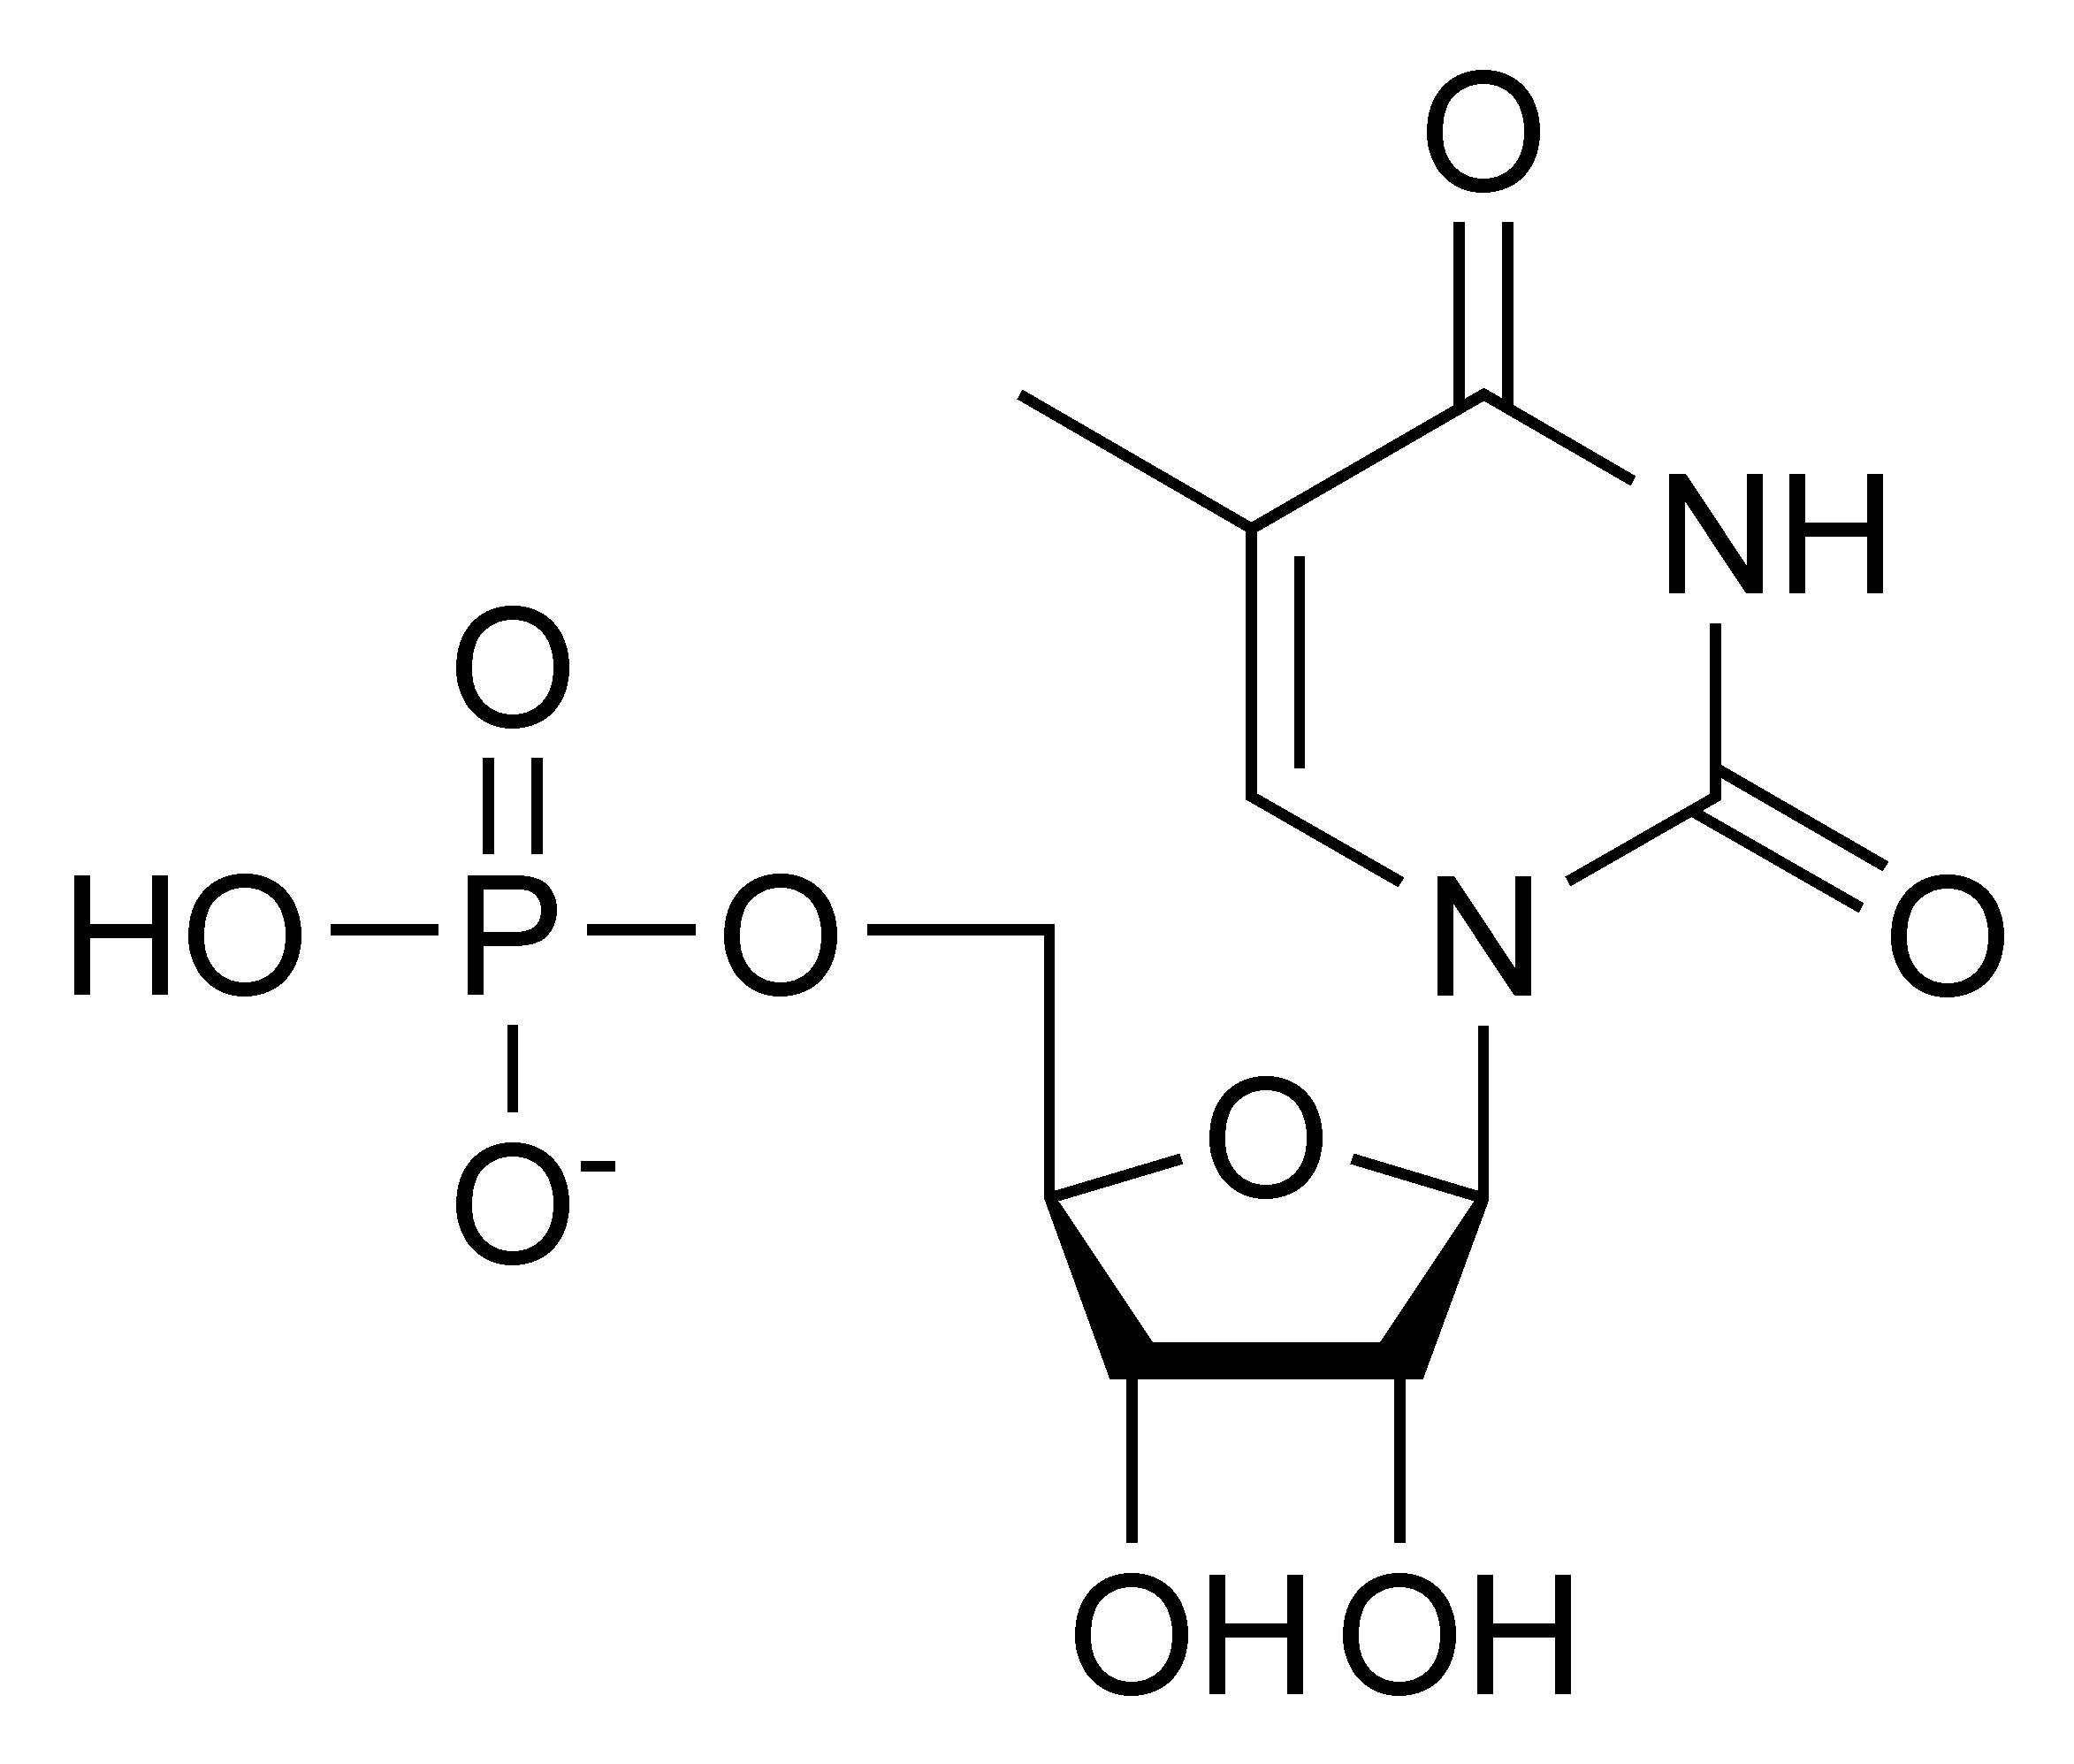 Chemical structure of thymidine monophosphate